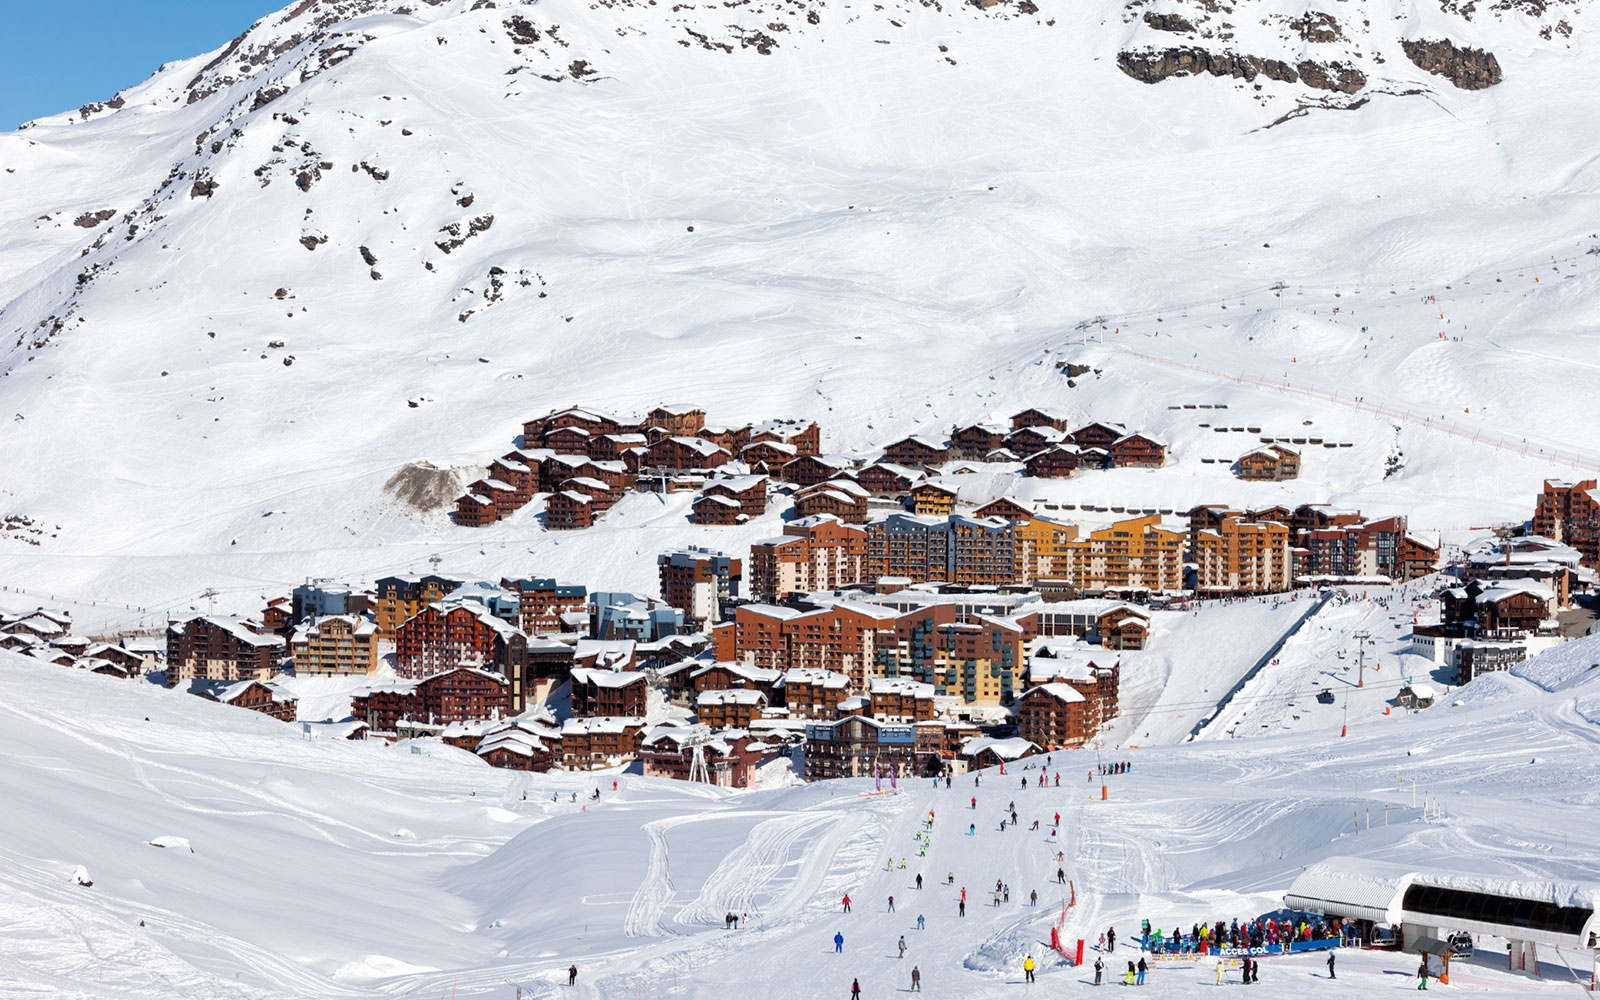 14. Courchevel Airport in France